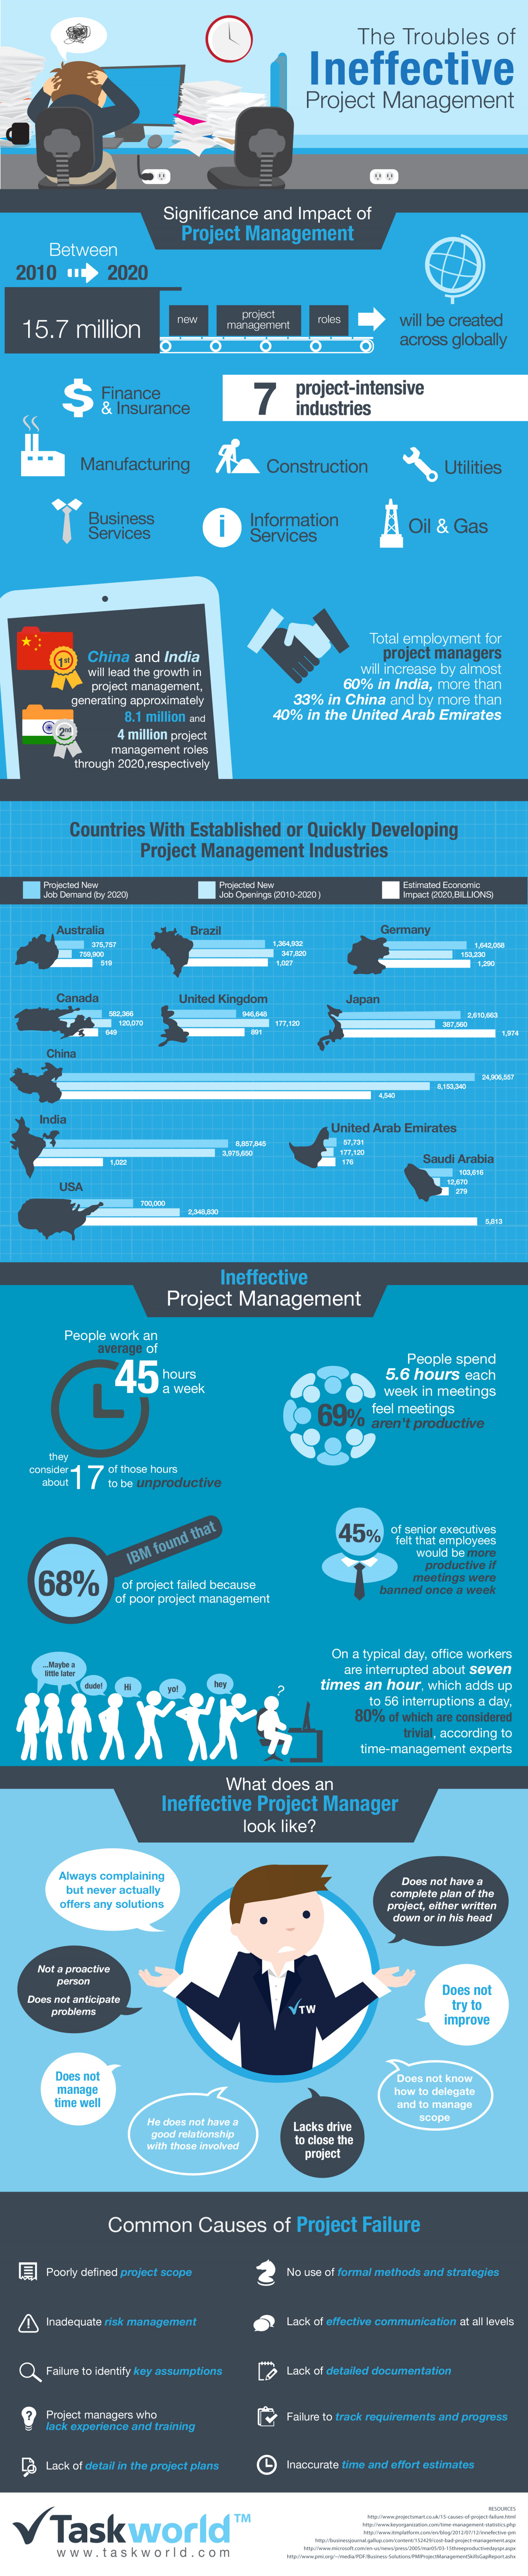 The Troubles of Ineffective Project Management Infographic